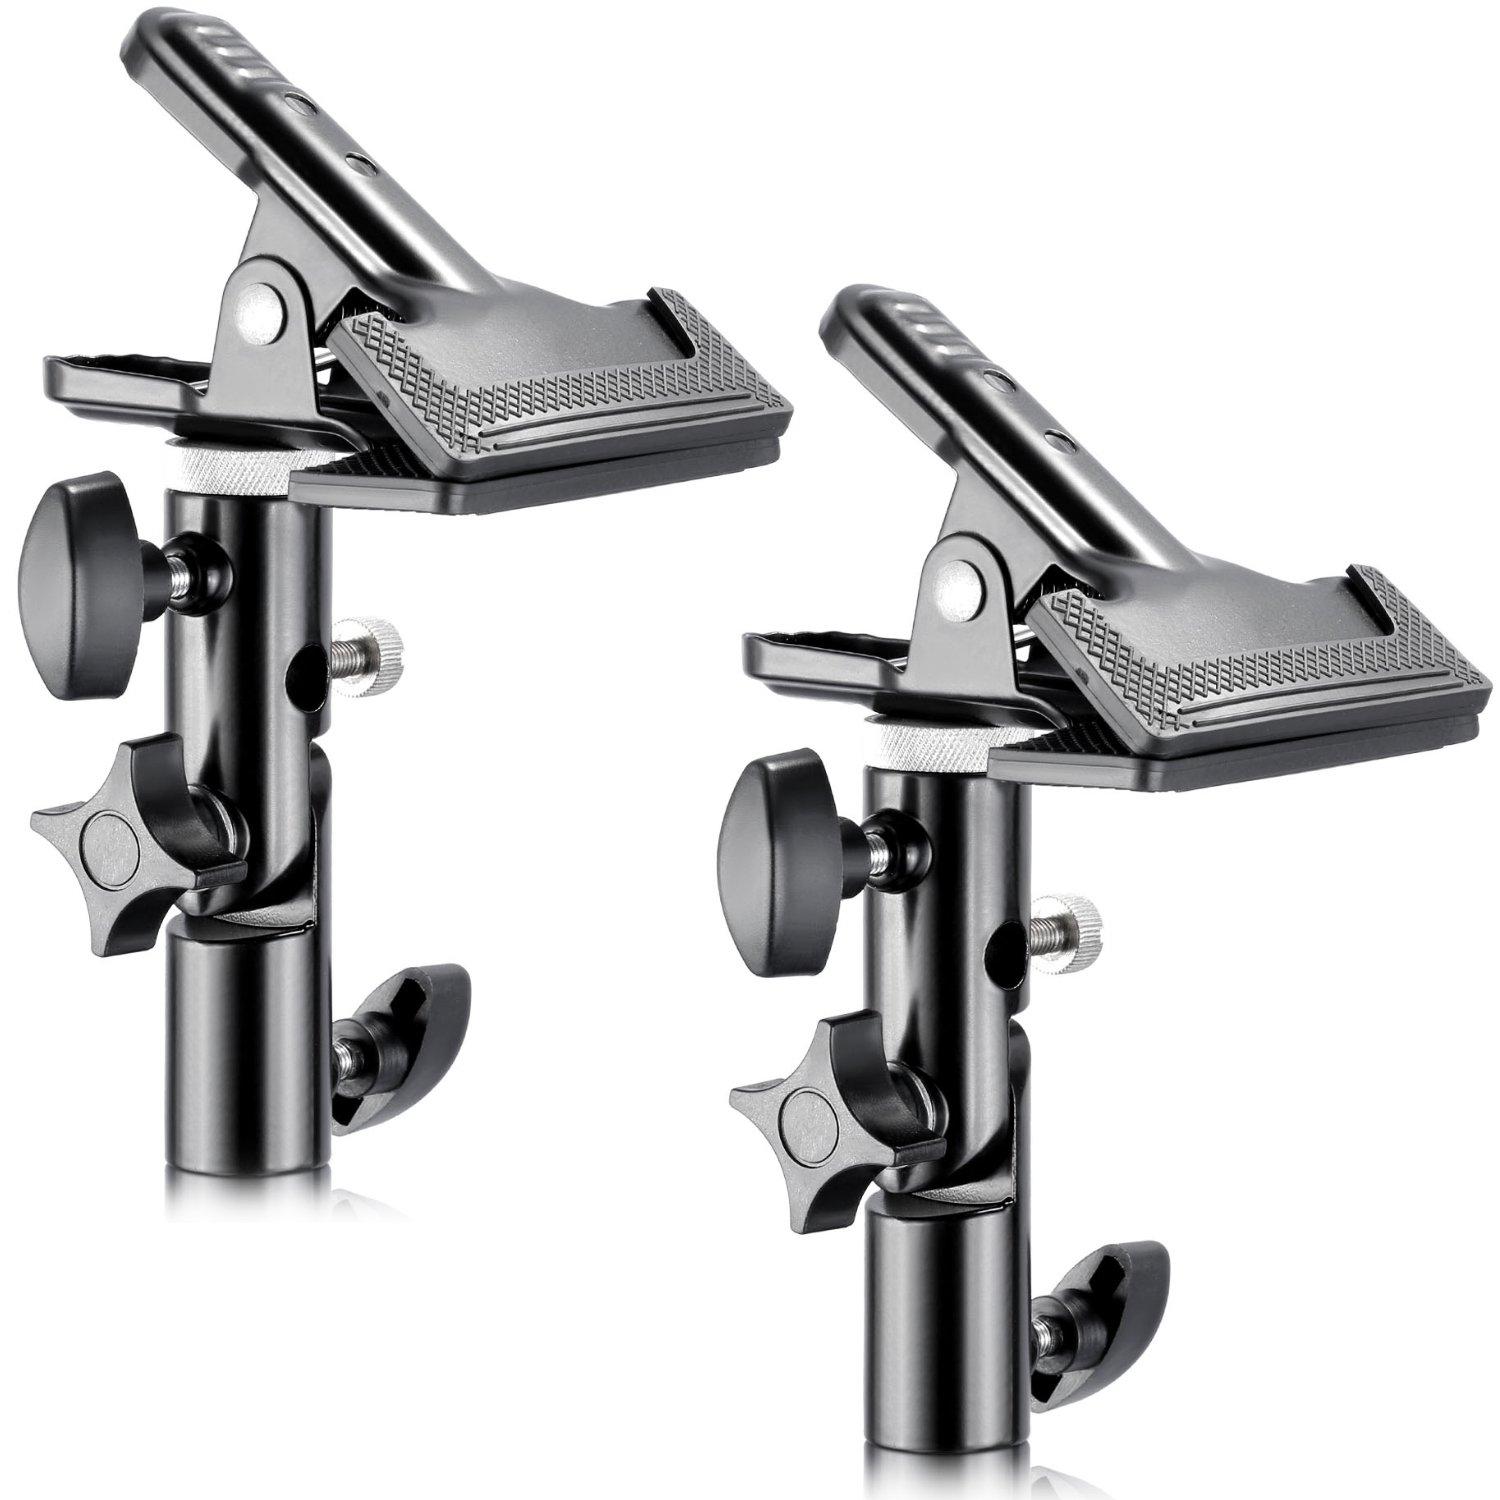 Neewer 2 PCS Photo Studio Heavy Duty Metal Clamp Holder with 5/8'' Light Stand Attachment for Reflector by Neewer